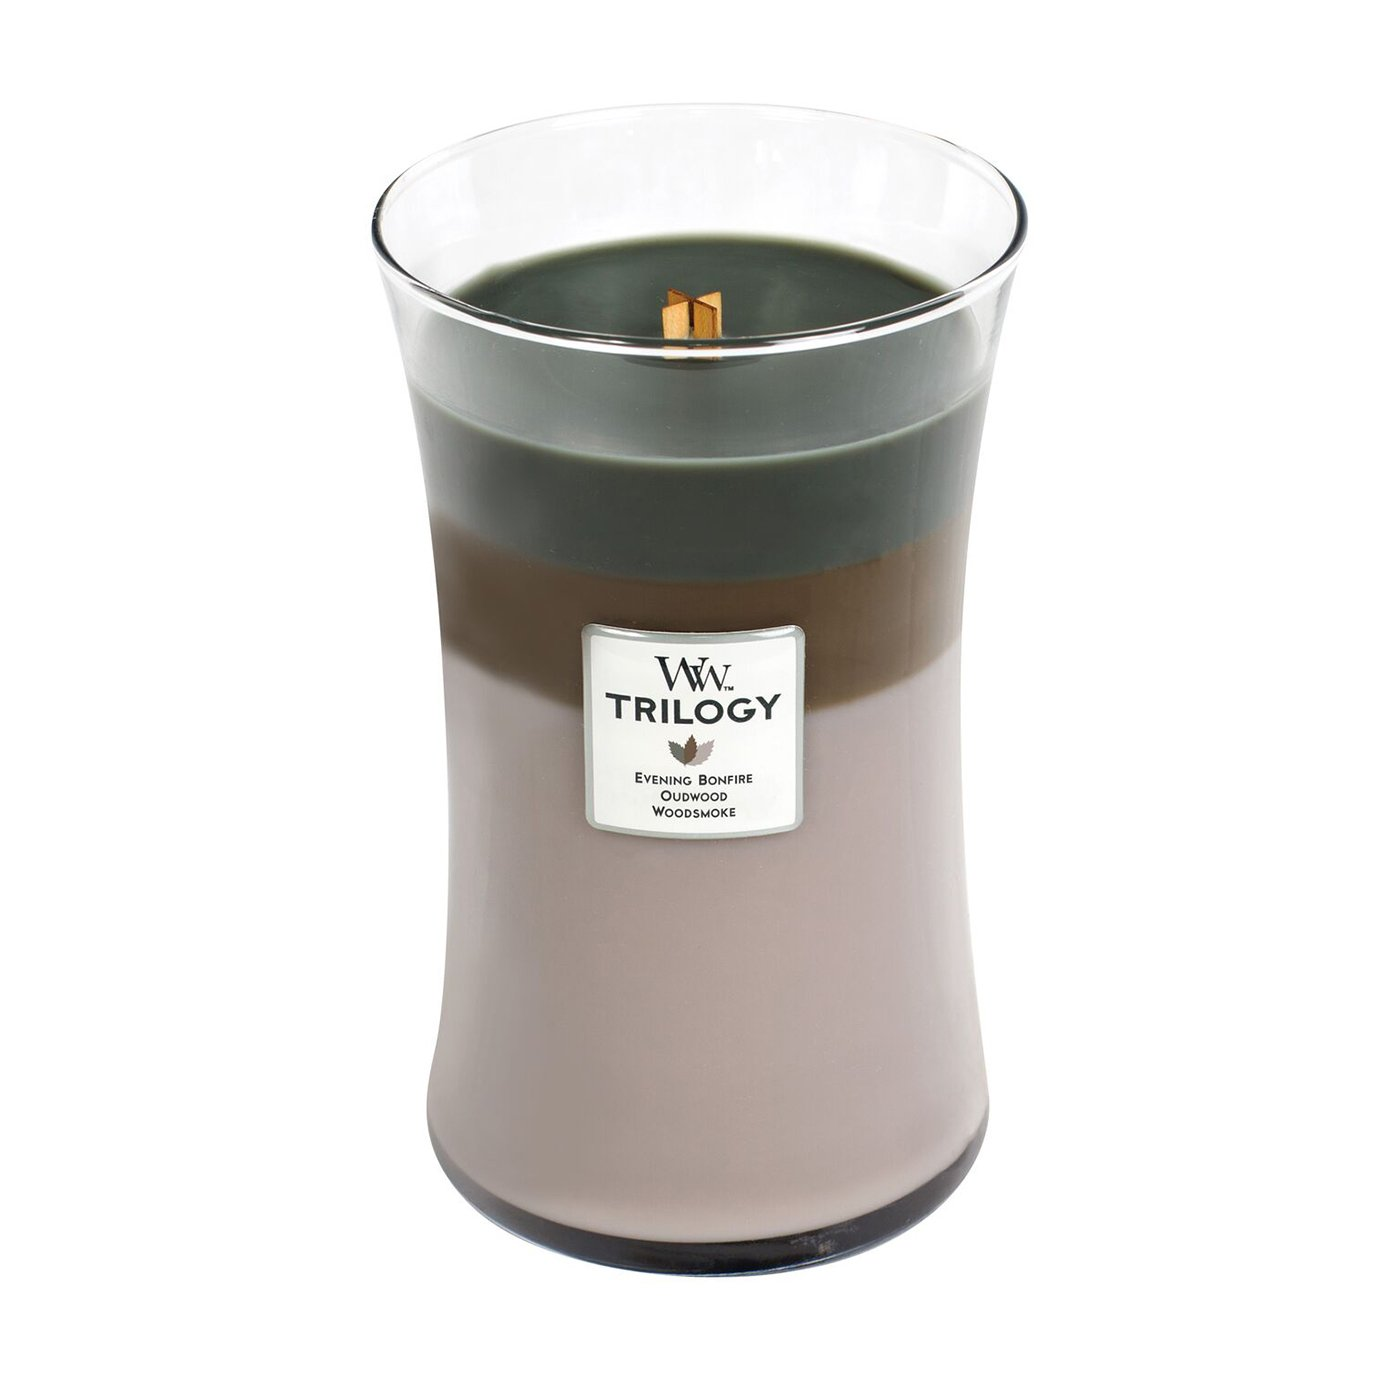 WoodWick Trilogy Cozy Cabin, 3-in-1 Highly Scented Candle, Classic Hourglass Jar, Large 7-inch, 21.5 oz by WoodWick